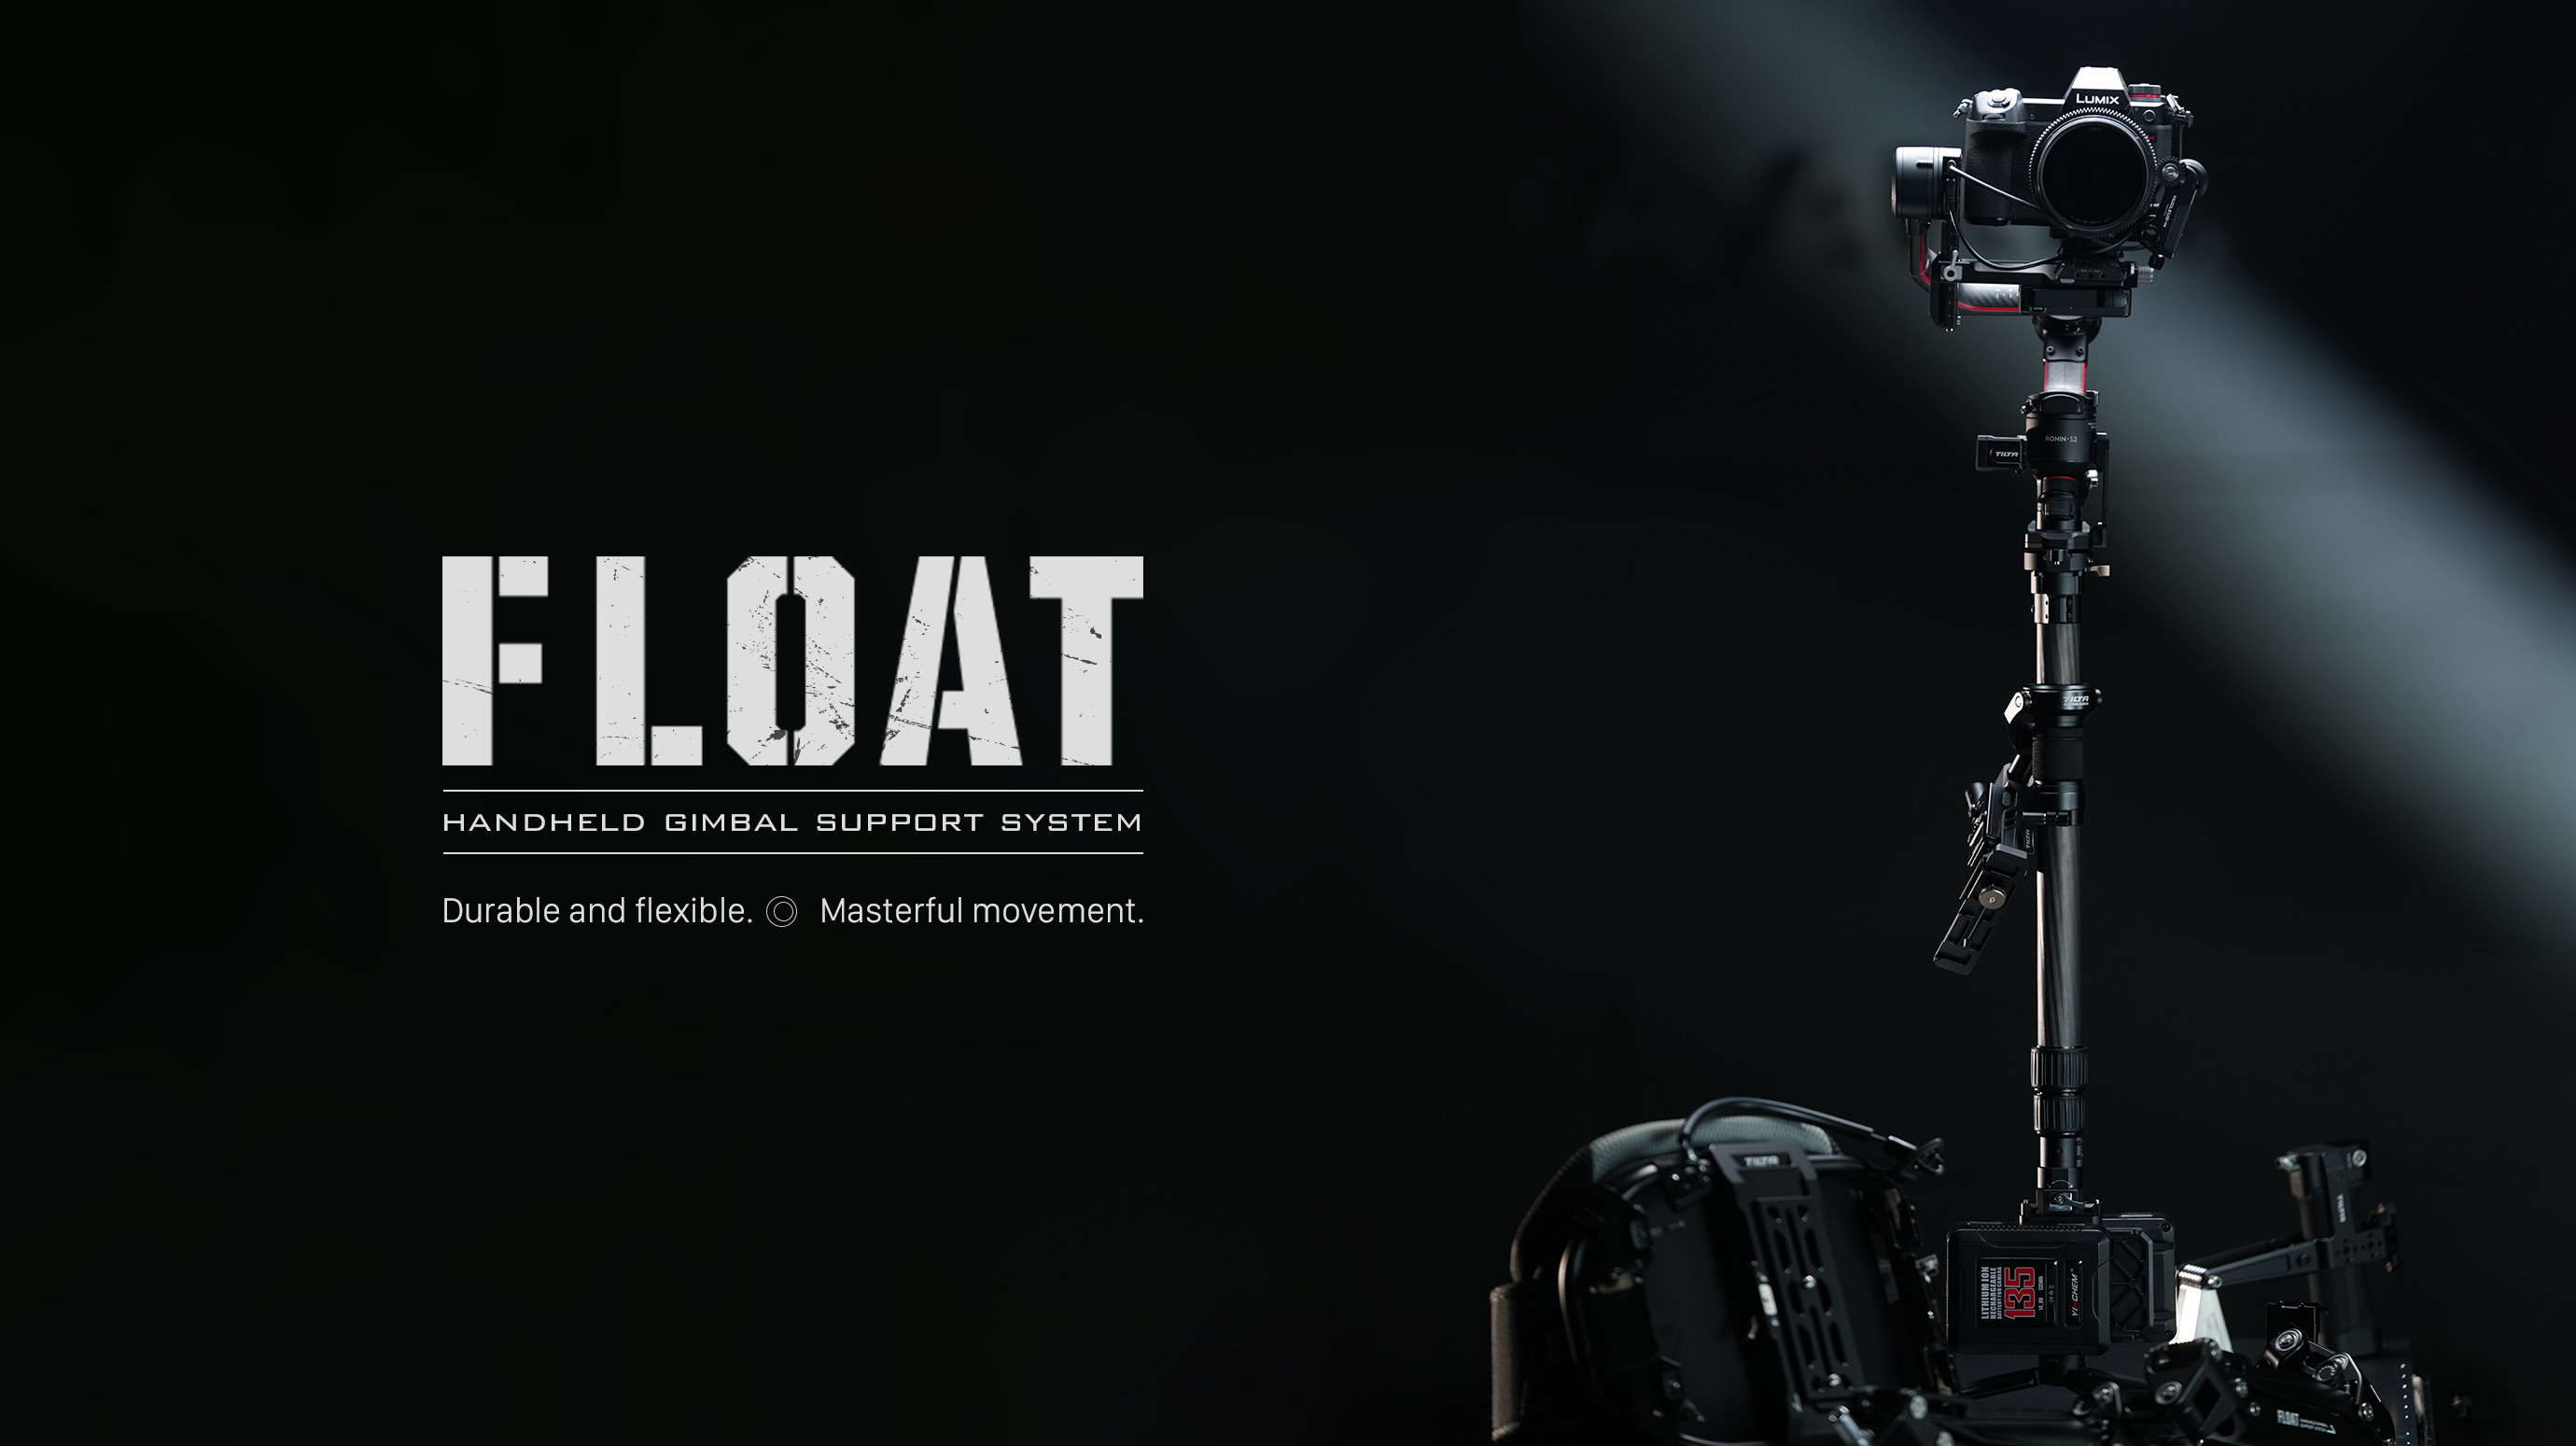 Tilta Float Handheld Gimbal Support System Overview for RS2